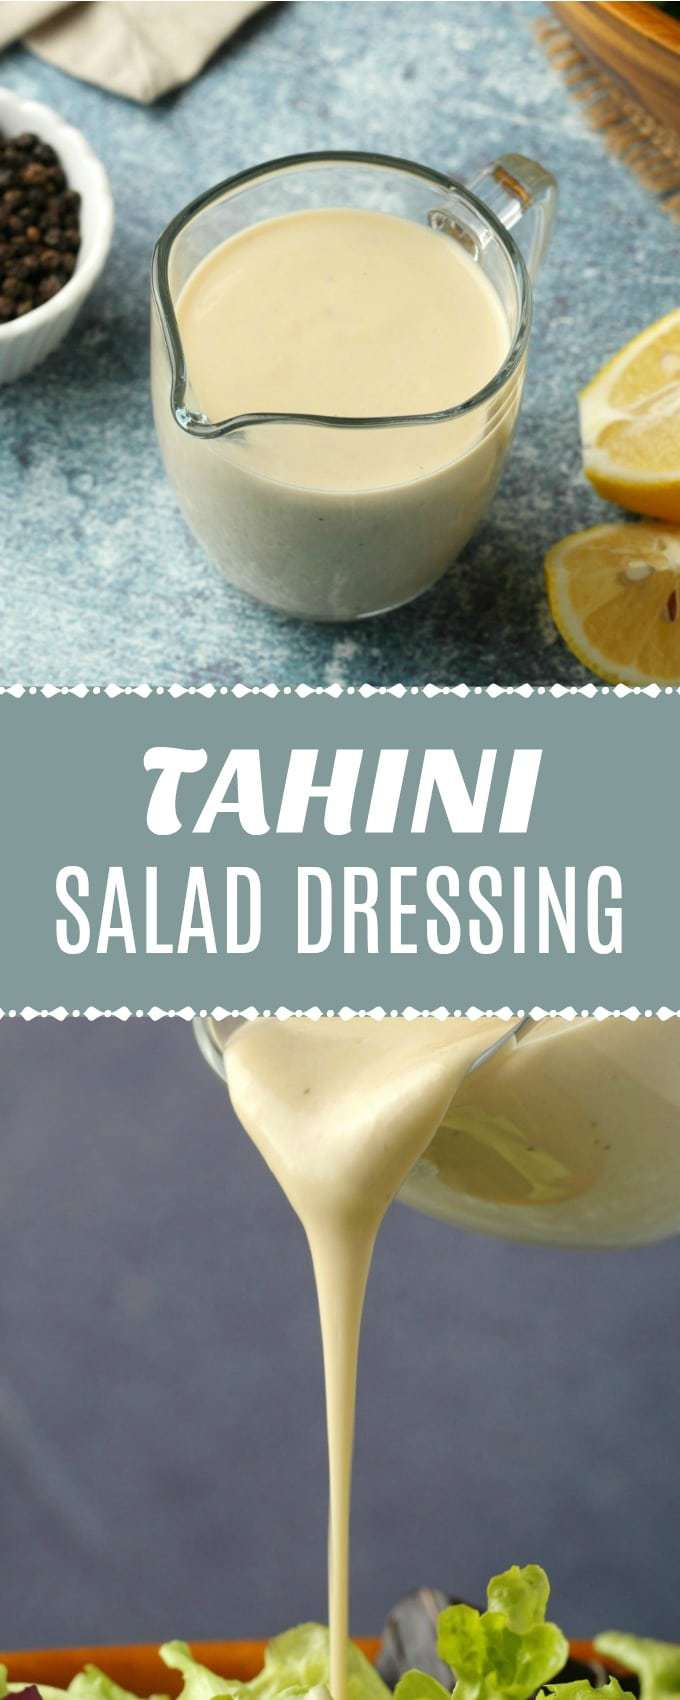 Super simple and versatile tahini salad dressing. Creamy, smooth, tangy and fresh, this vegan salad dressing can turn any simple salad into a gourmet event! | lovingitvegan.com